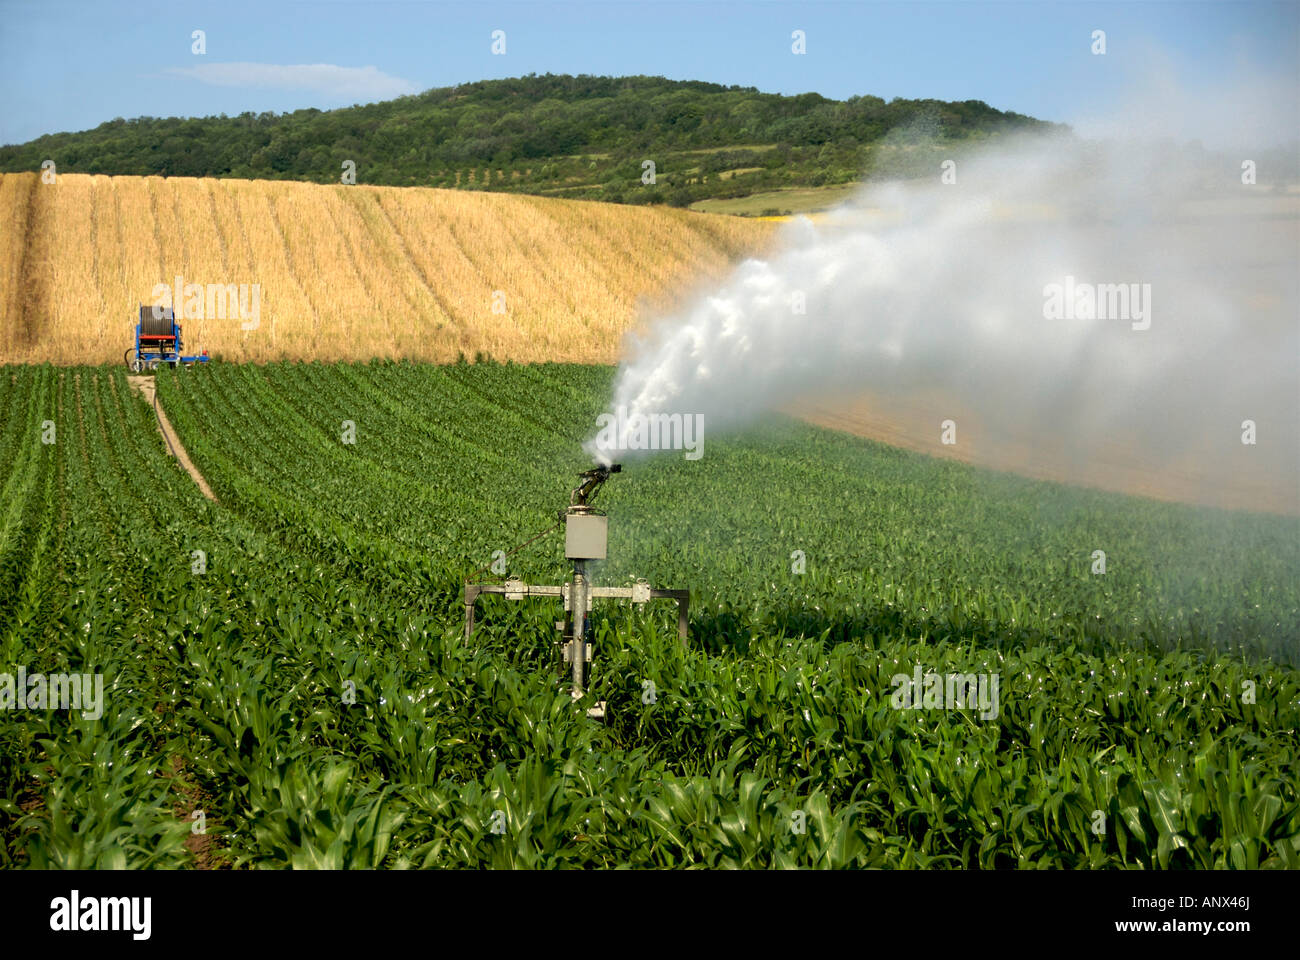 Sprinkler installation irrigating a field of maize in France, Europe - Stock Image